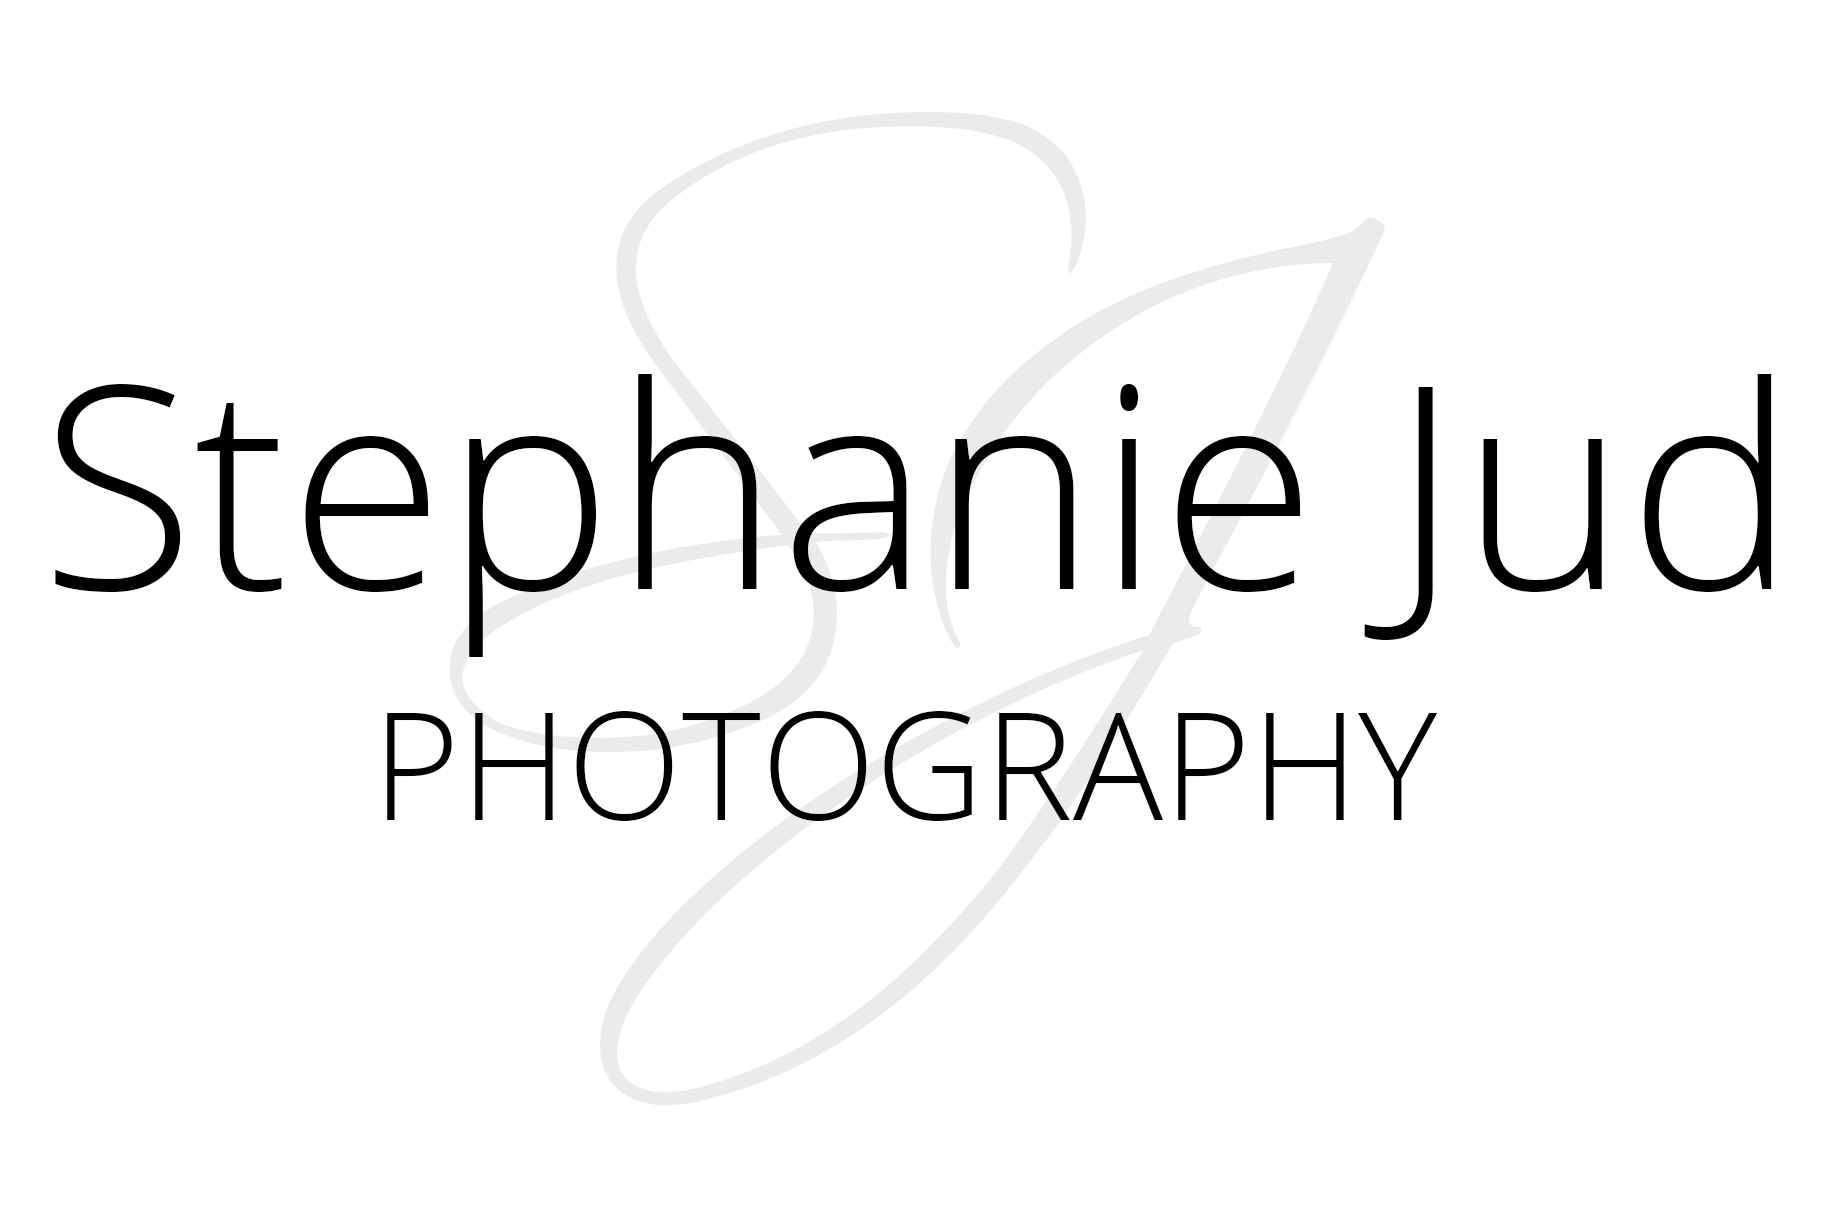 Stephanie Jud Photography